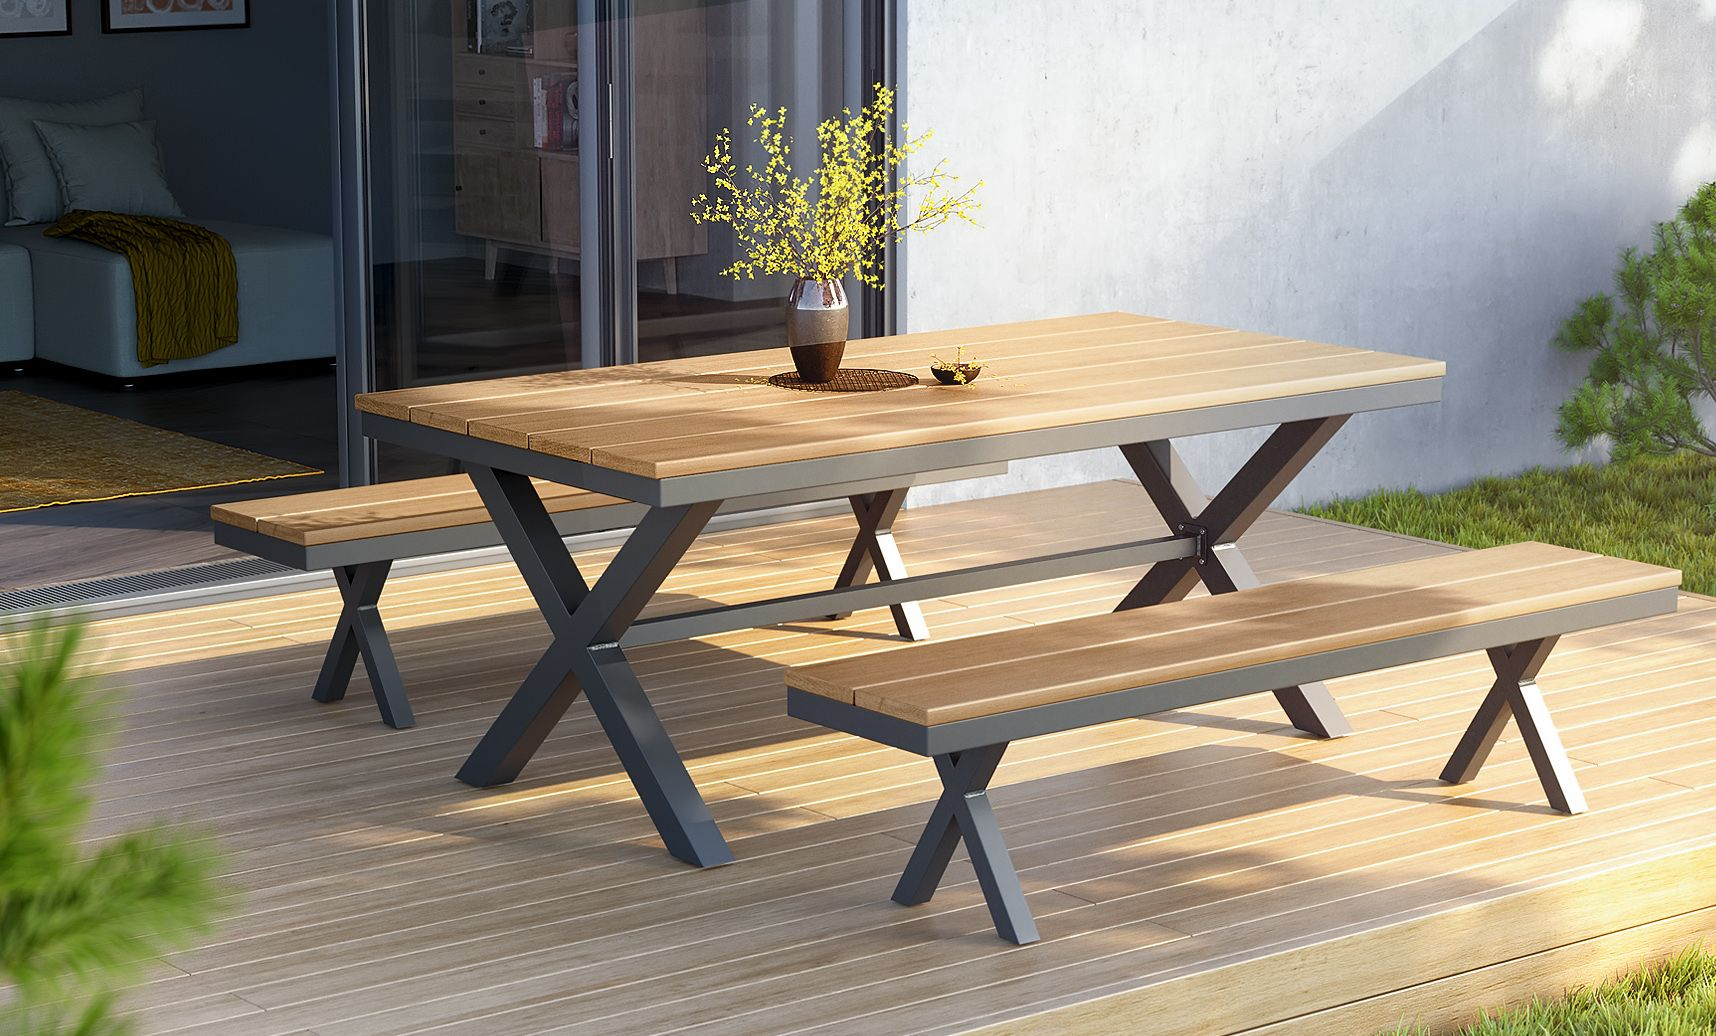 Oleta Outdoor Dining Table Bench Set Table And Bench Set